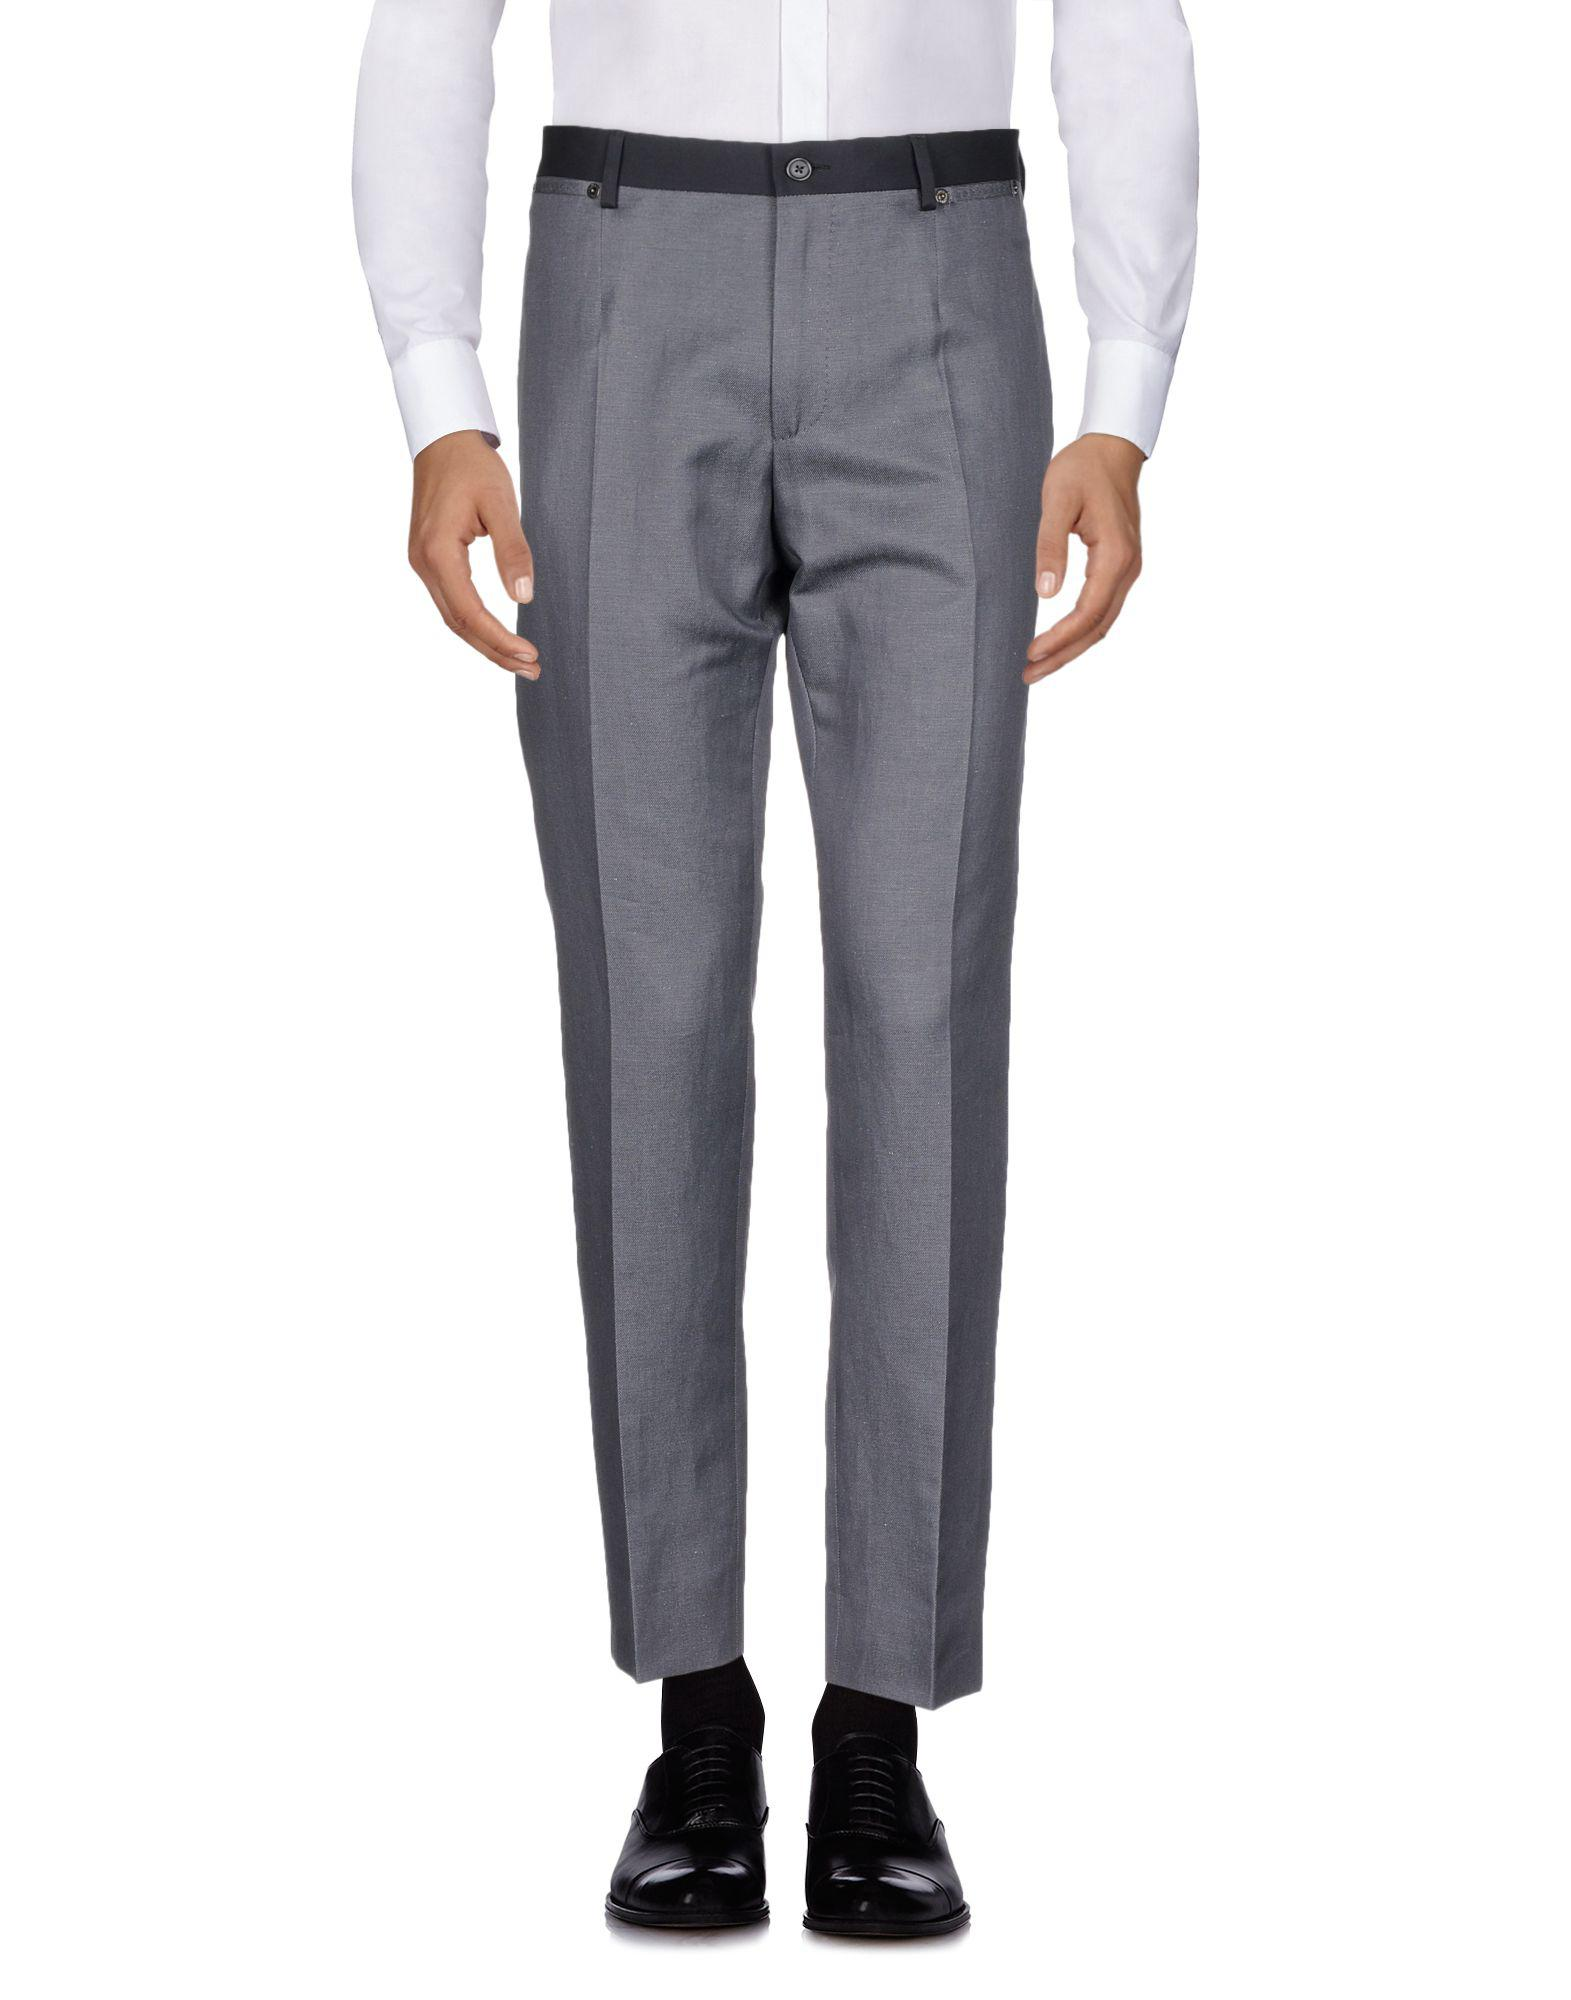 Sale Choice TROUSERS - Casual trousers AntPitagora Factory Outlet Cheap Online Visa Payment Online Fashion Style For Sale Discounts f5buLk